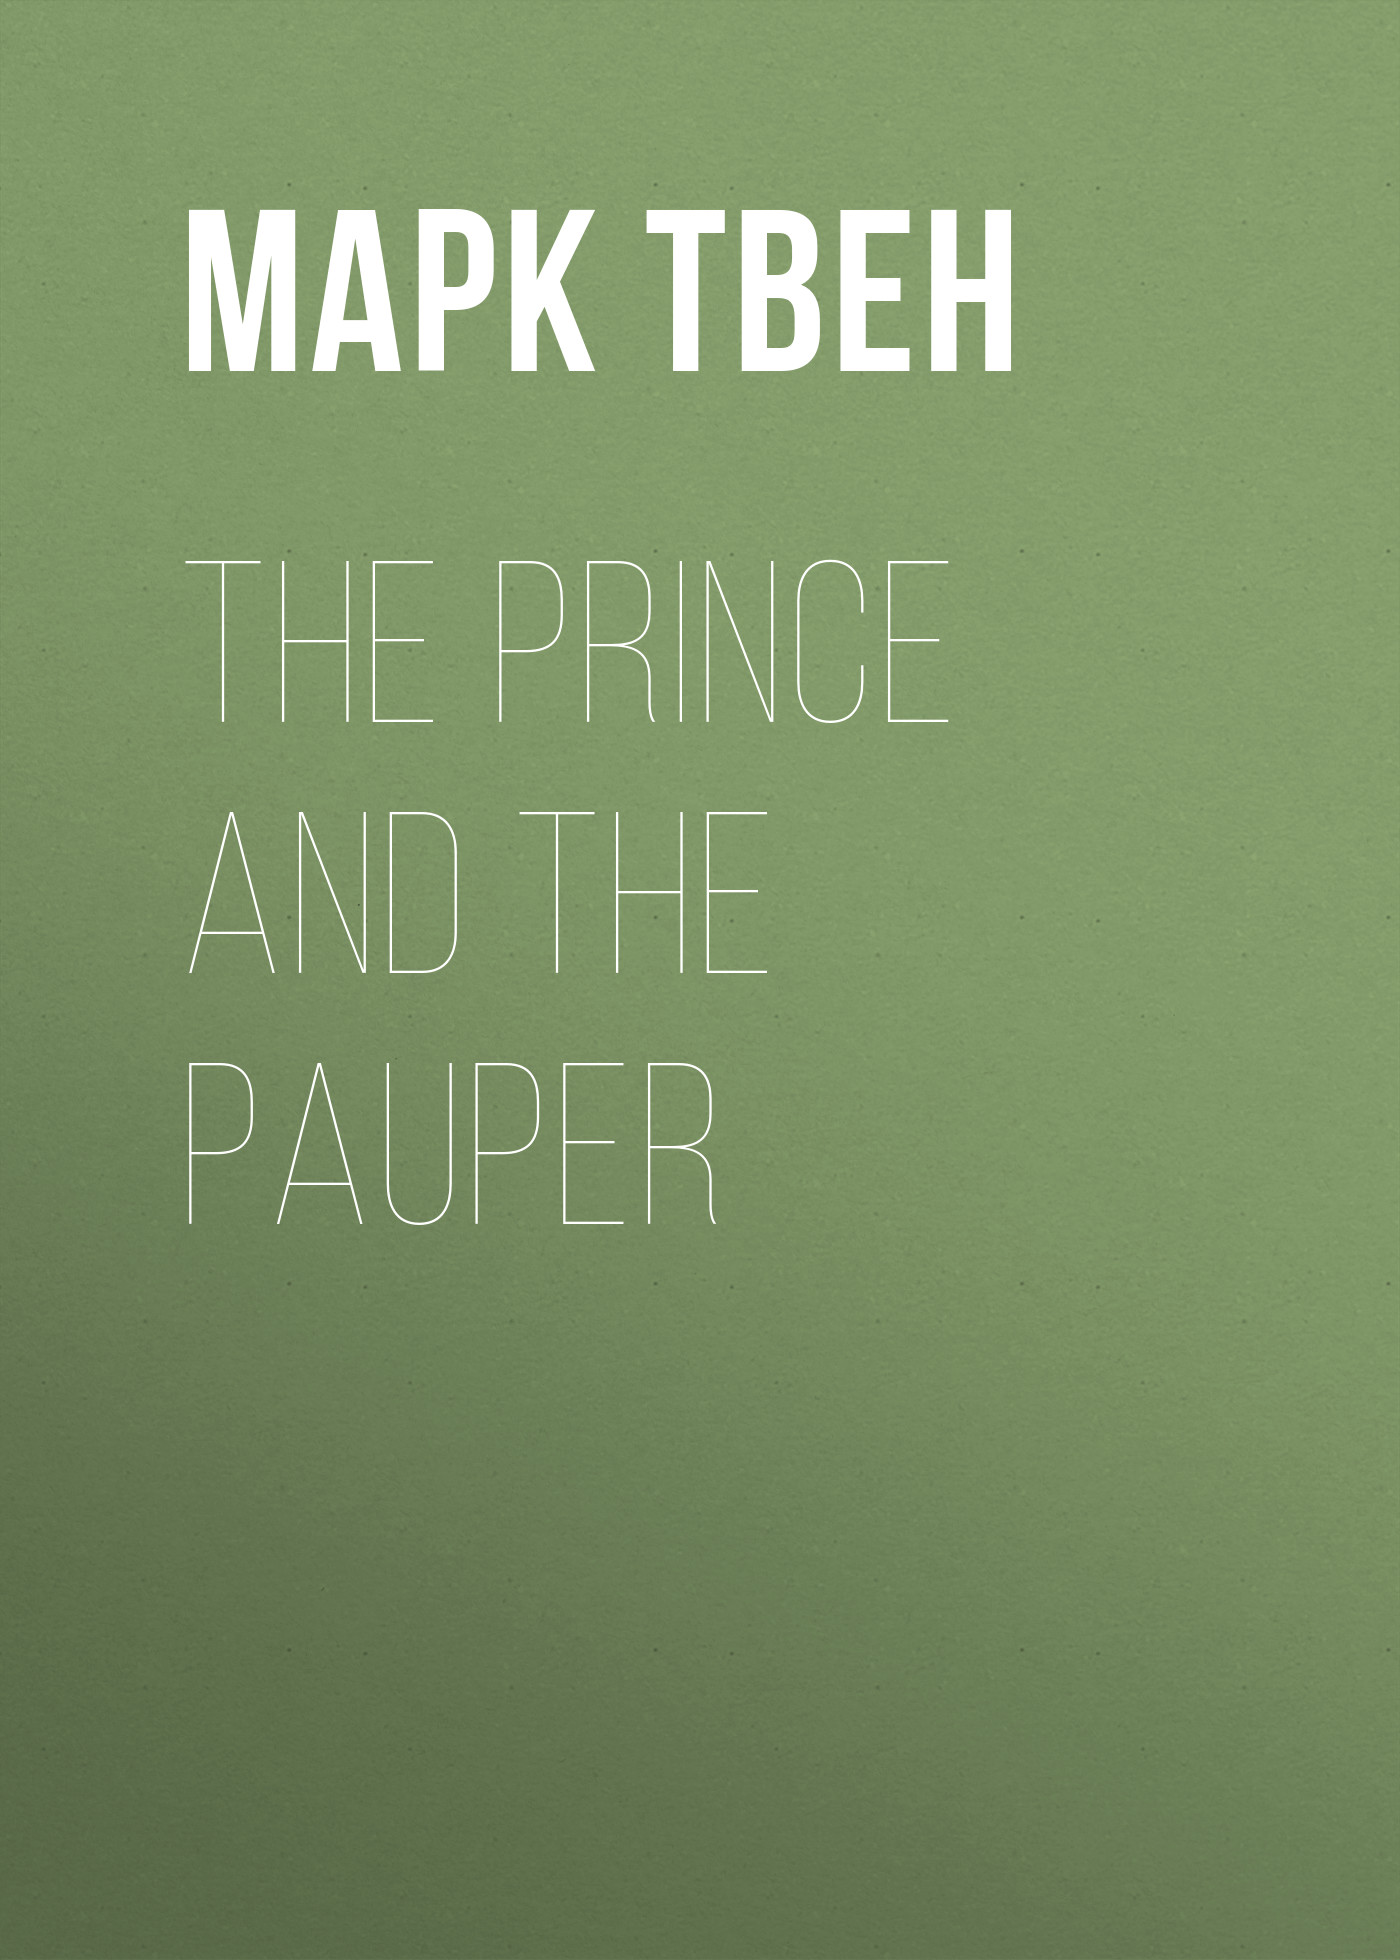 Марк Твен The Prince and the Pauper марк твен sketches new and old